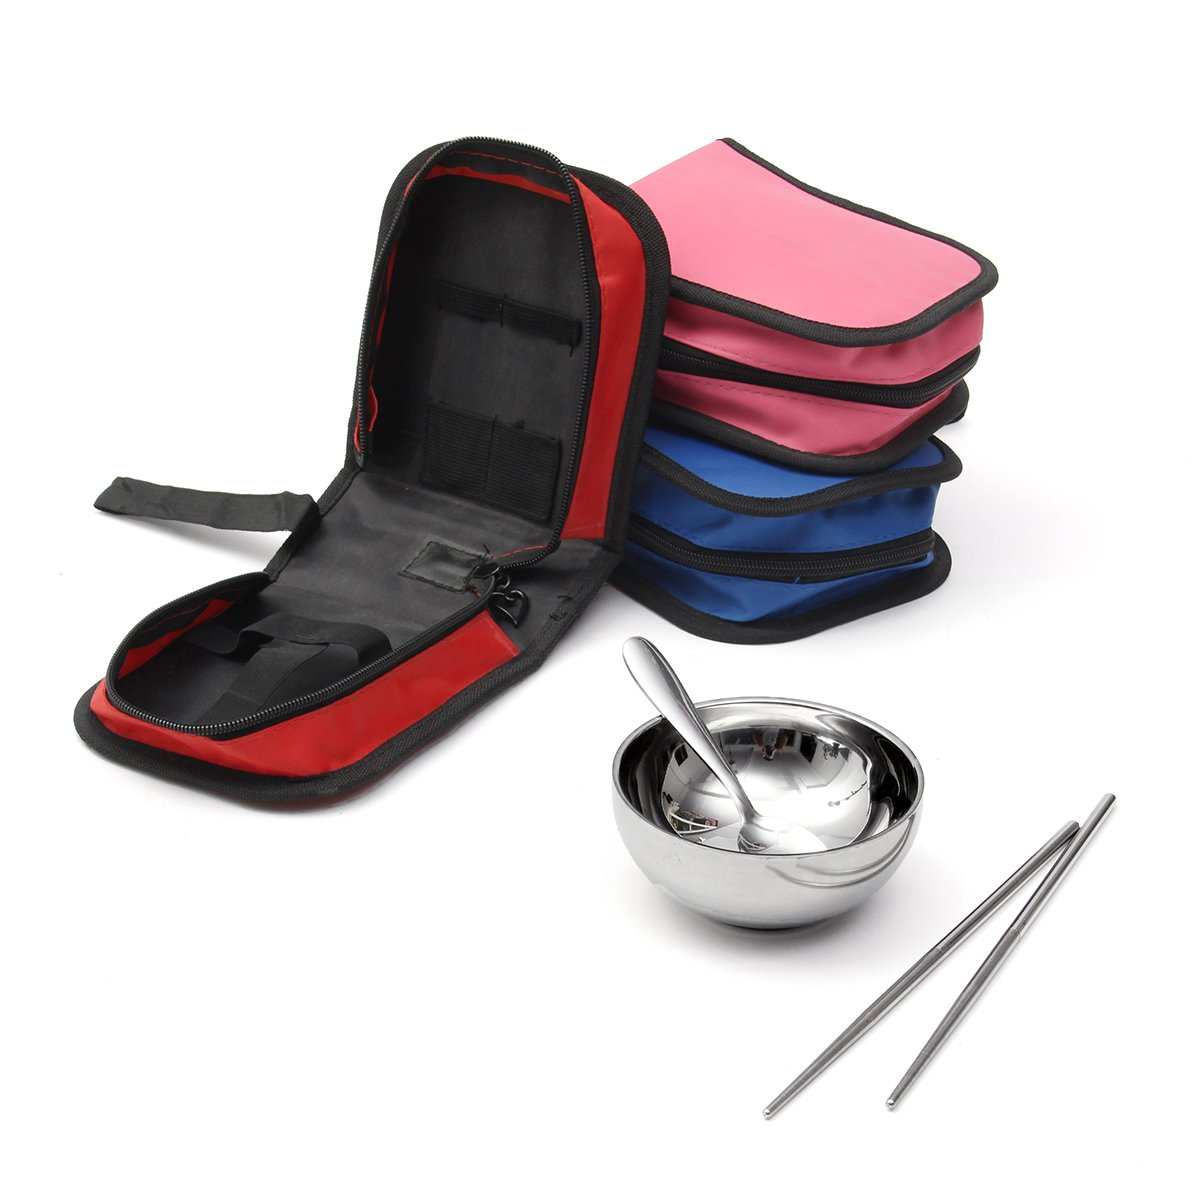 ShopSquare64 IPRee Outdoor 3 Pcs Sets Portable Stainless Steel Bowl Chopsticks Spoon Storage Bag Travel Picnic Cooking